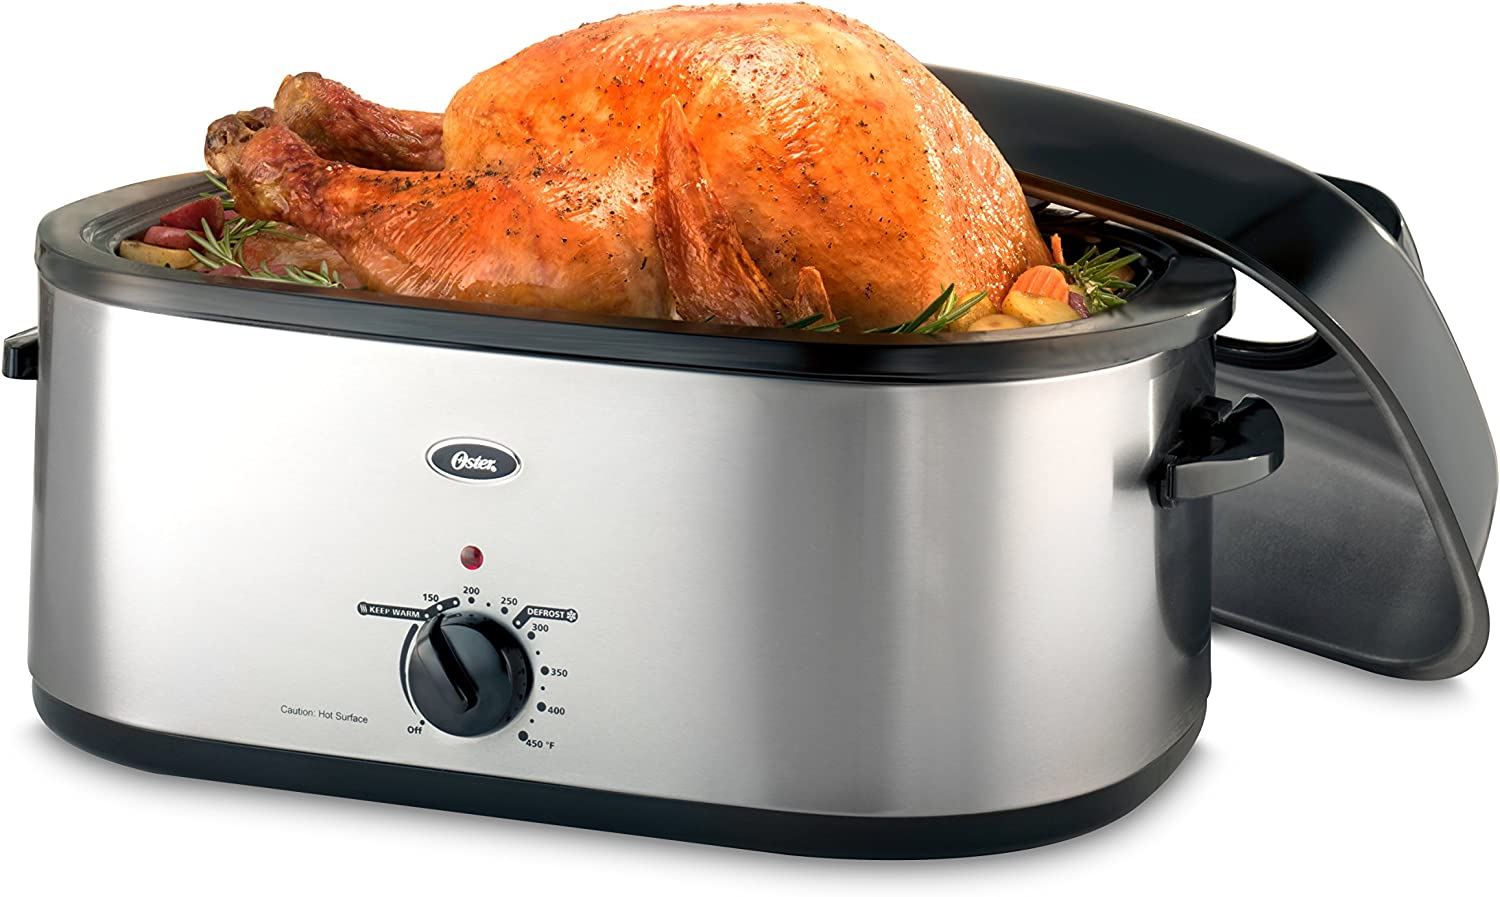 Oster 20-Quart Roaster with Self-Basting, High-Dome Lid, Brushed Stainless Steel – CKSTRS20-SBHVW